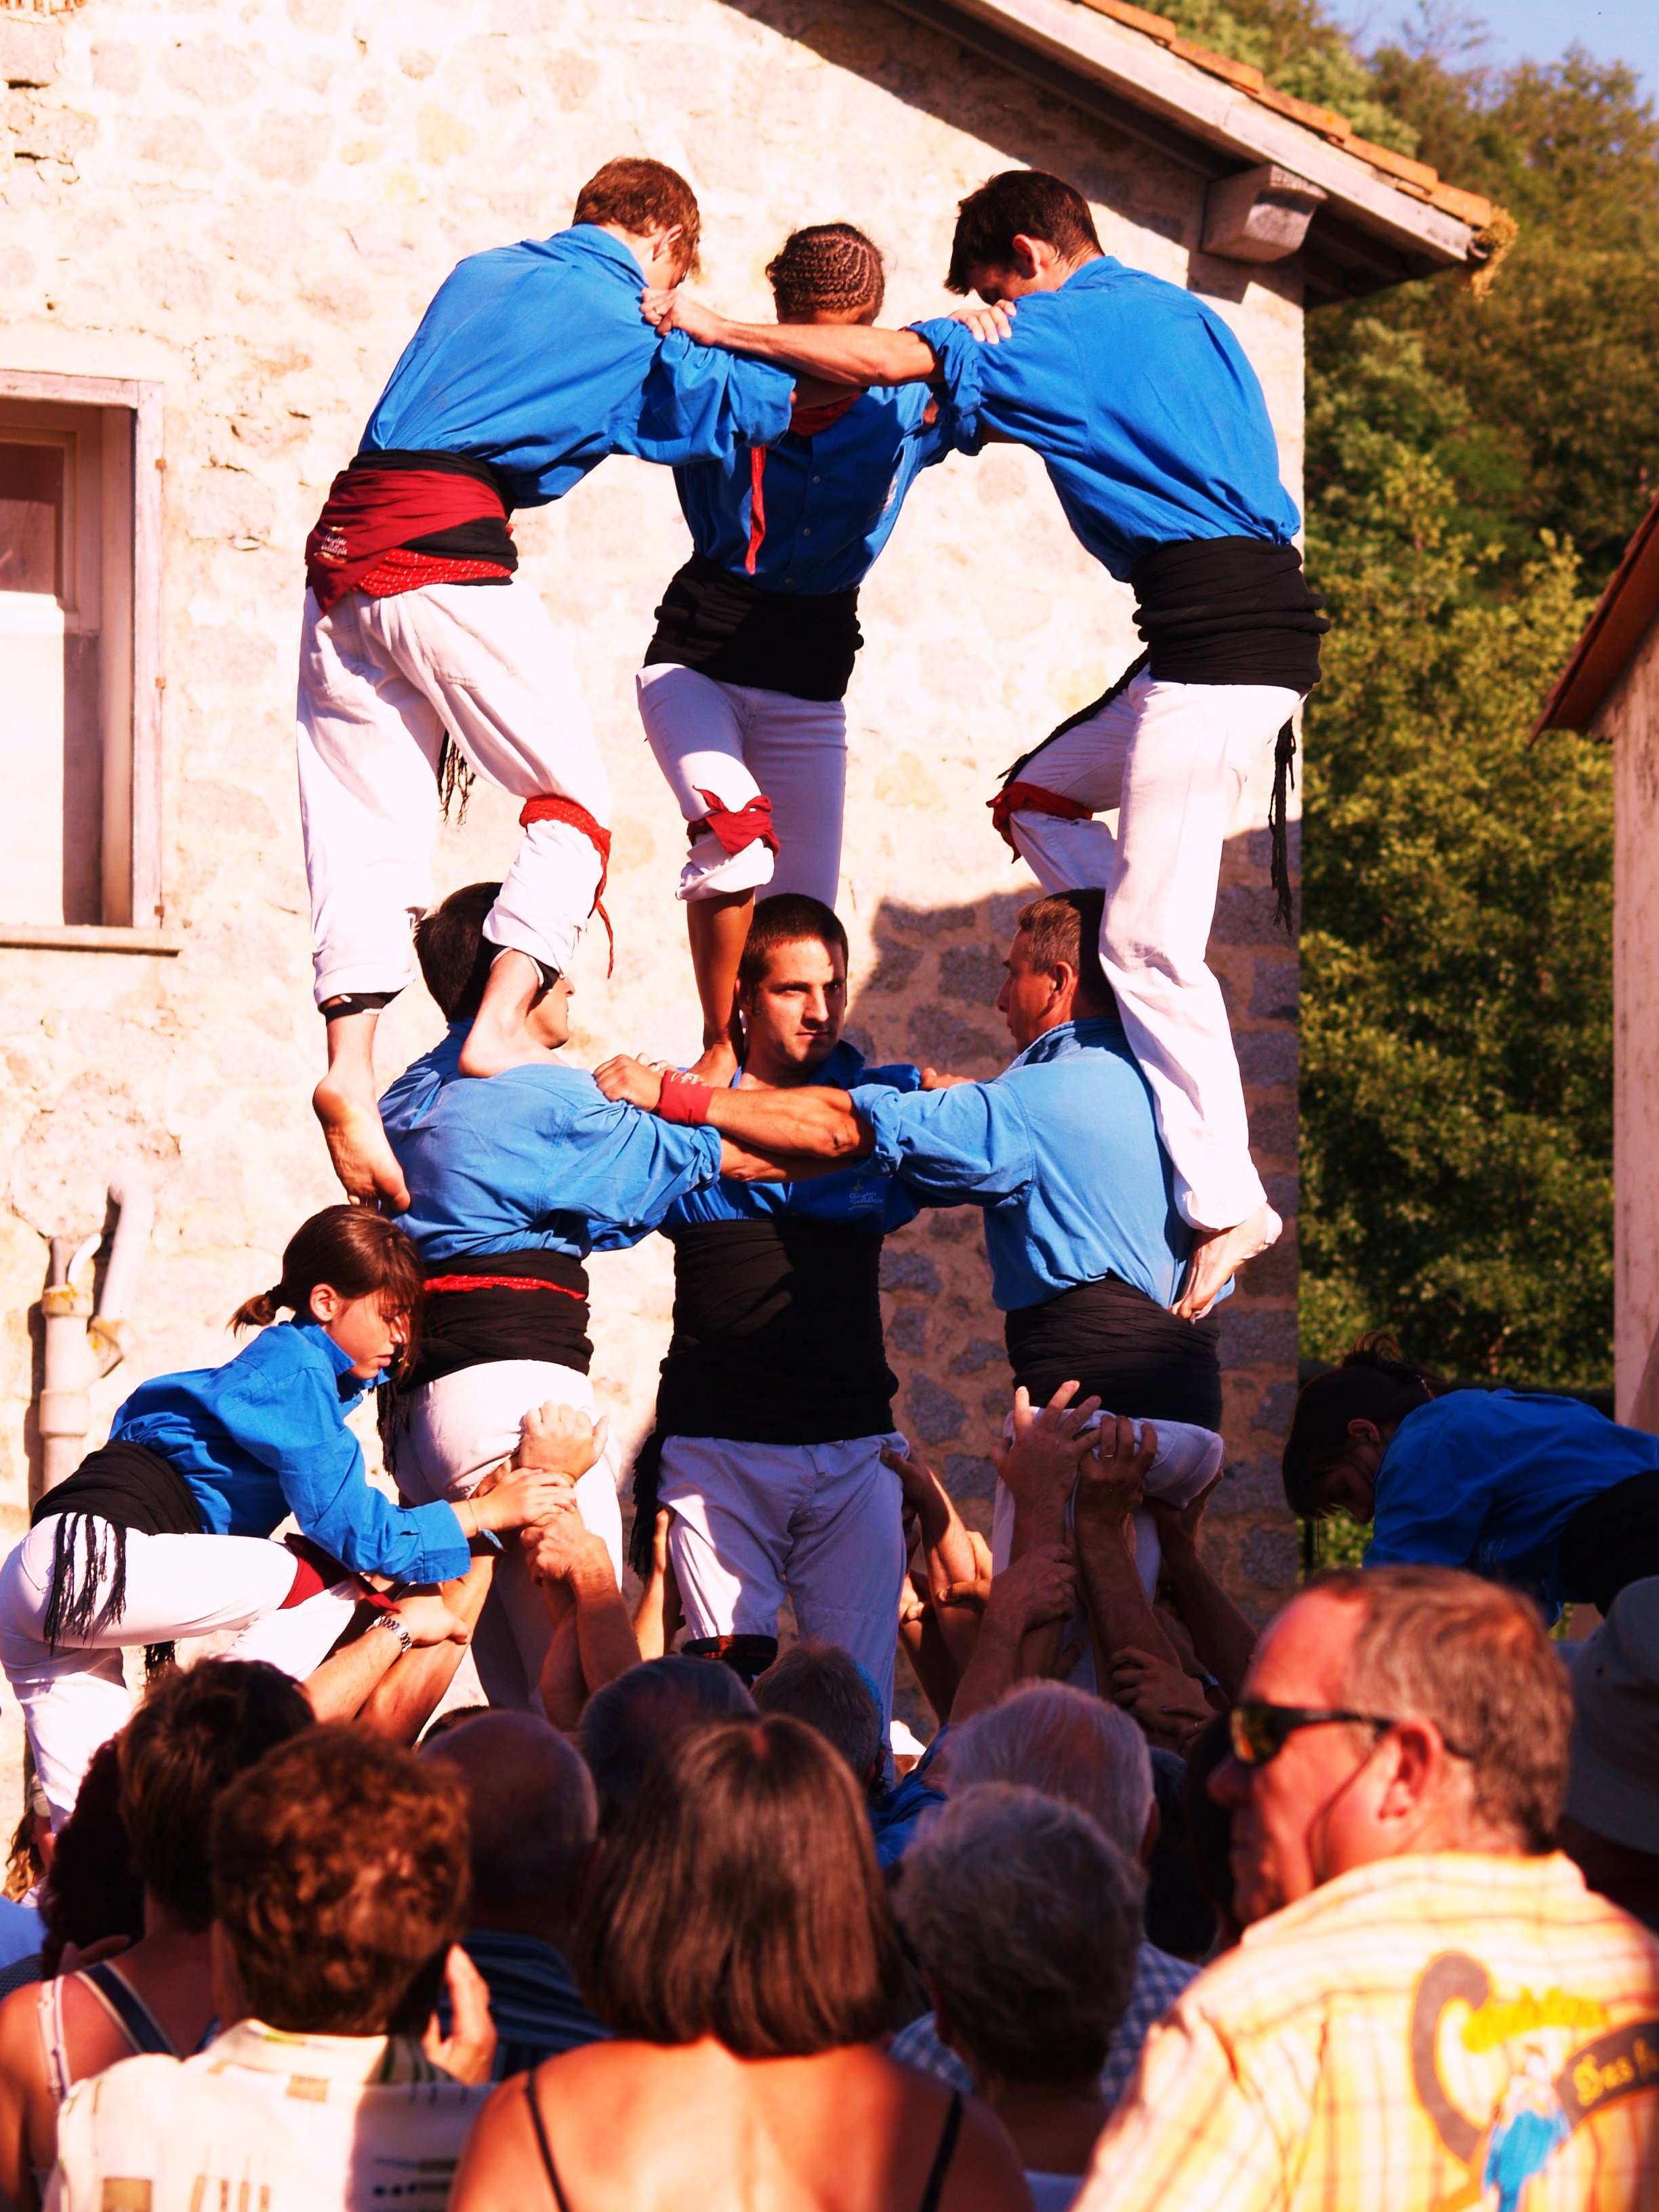 Castellers ou château humain tradition catalane (Photo 15 Jean-Luc Modat).JPG